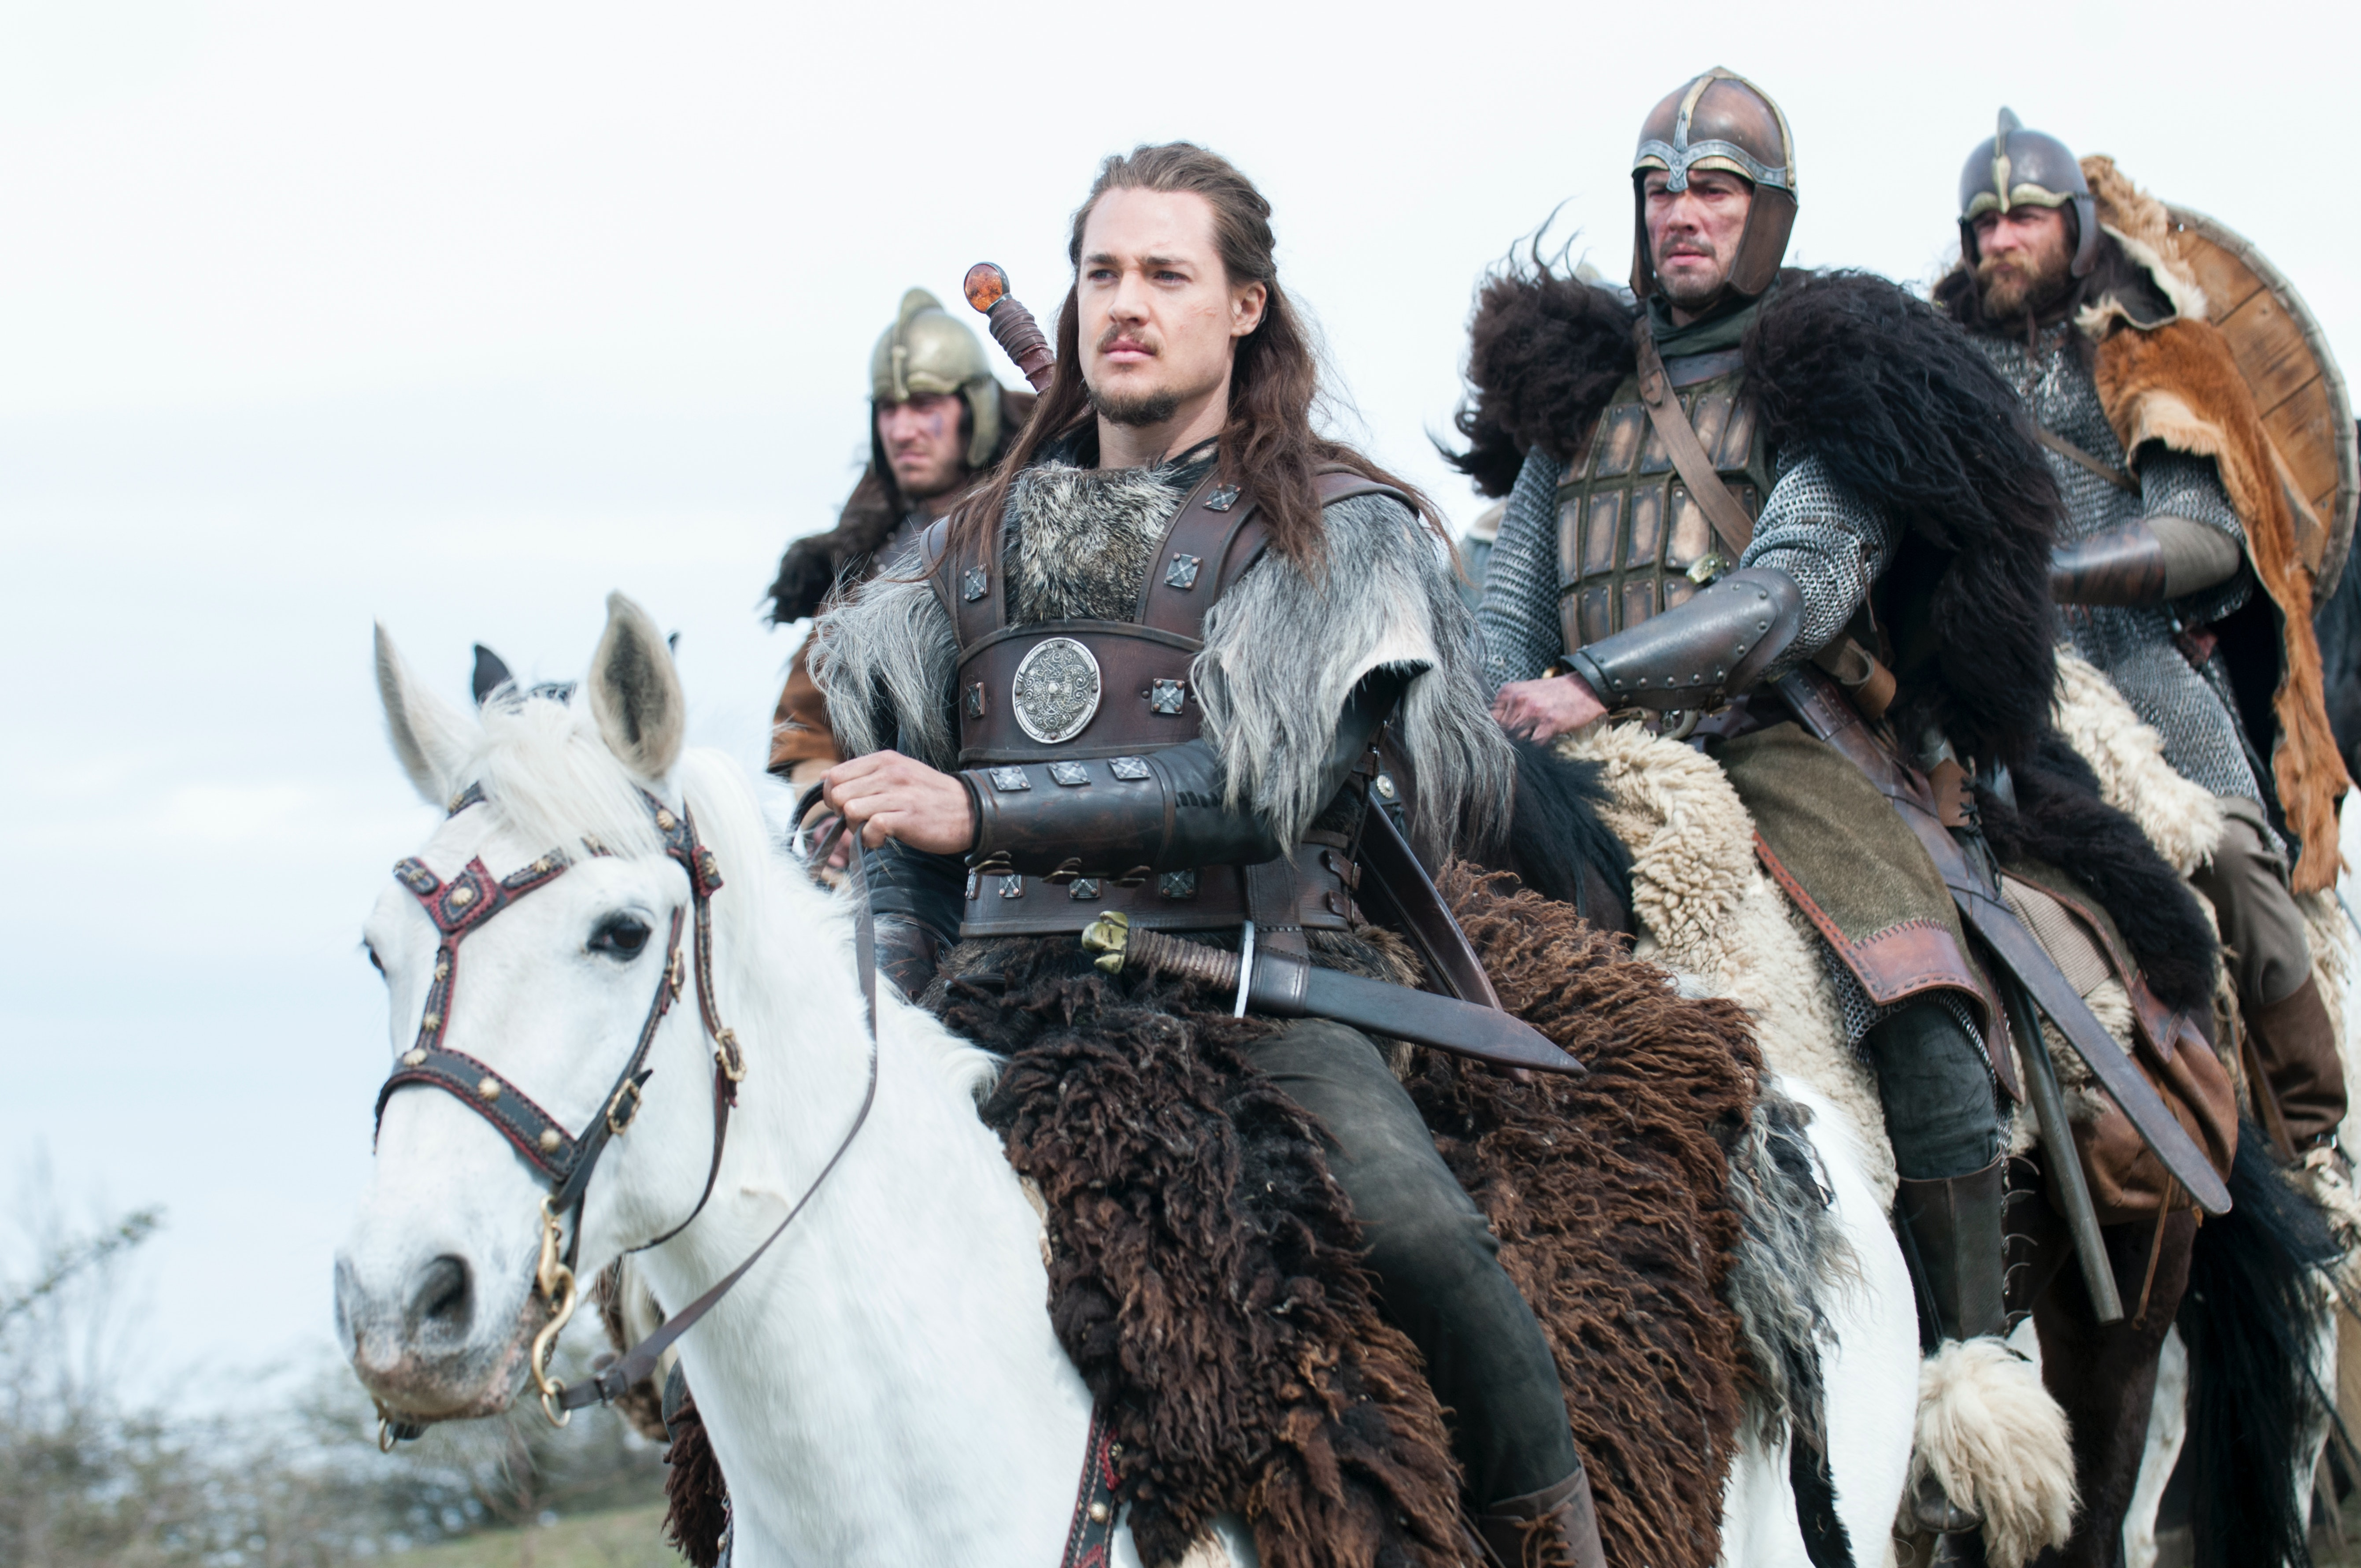 7 Shows 'The Last Kingdom' Fans Should Watch While Waiting